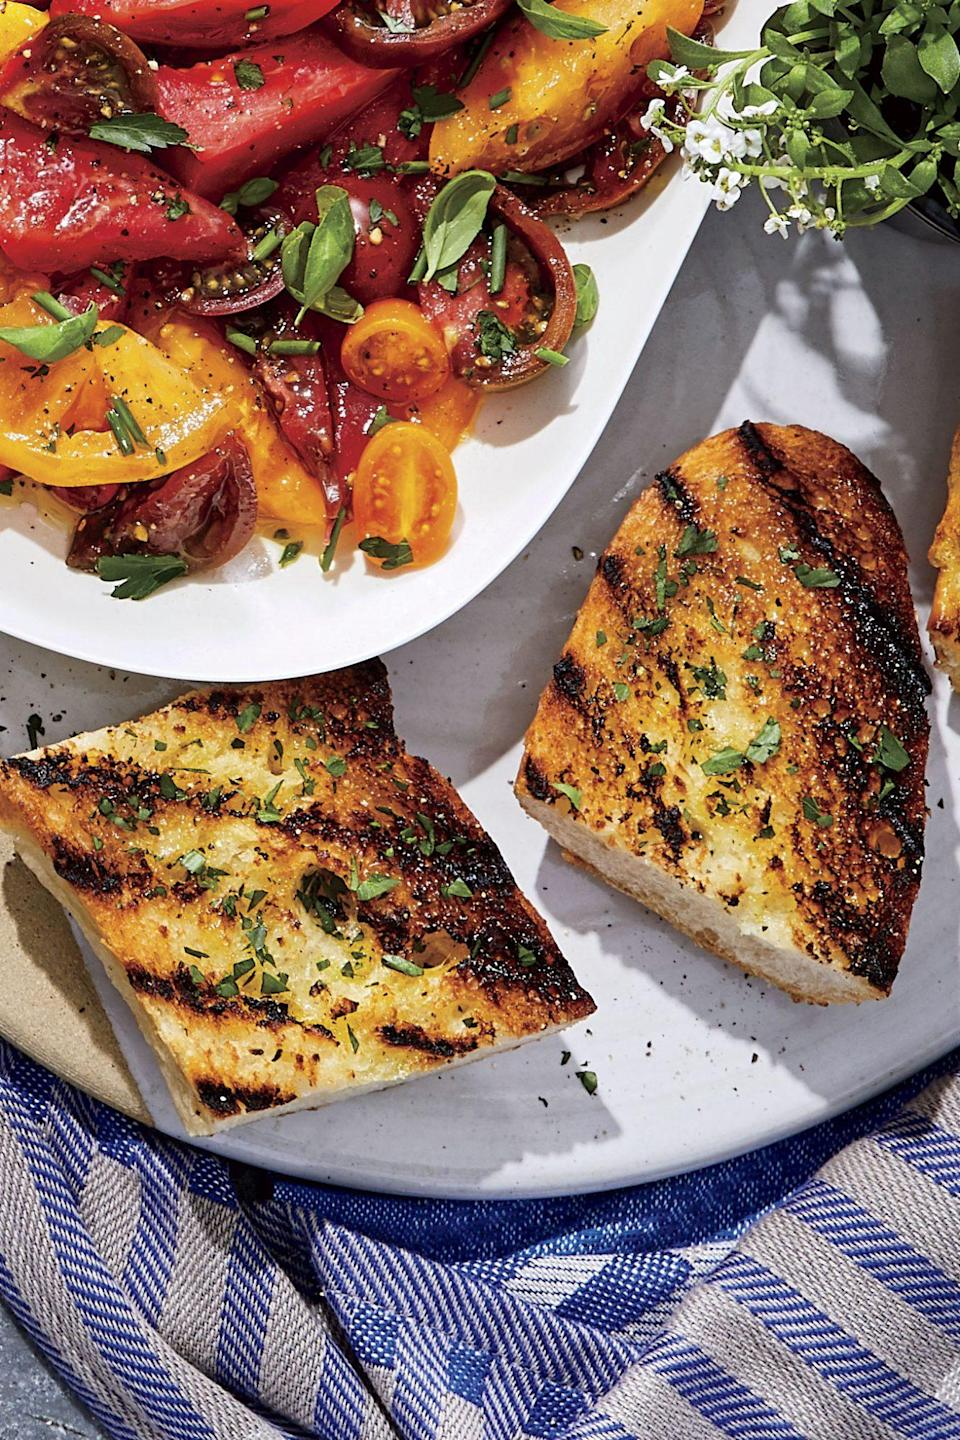 """<p>Homemade <a href=""""https://www.southernliving.com/recipes/garlic-bread-recipe"""" rel=""""nofollow noopener"""" target=""""_blank"""" data-ylk=""""slk:garlic bread"""" class=""""link rapid-noclick-resp"""">garlic bread</a> is a welcome addition to almost any meal, especially when it has a smoky <a href=""""https://www.southernliving.com/food/holidays-occasions/grilling-recipes"""" rel=""""nofollow noopener"""" target=""""_blank"""" data-ylk=""""slk:char from the grill"""" class=""""link rapid-noclick-resp"""">char from the grill</a>. Garlic butter makes the bread extra rich, but you can substitute olive oil if you wish. Sprinkle the cut bread with grated parmesan cheese just before serving if your crowd prefers cheesy garlic bread.</p>"""